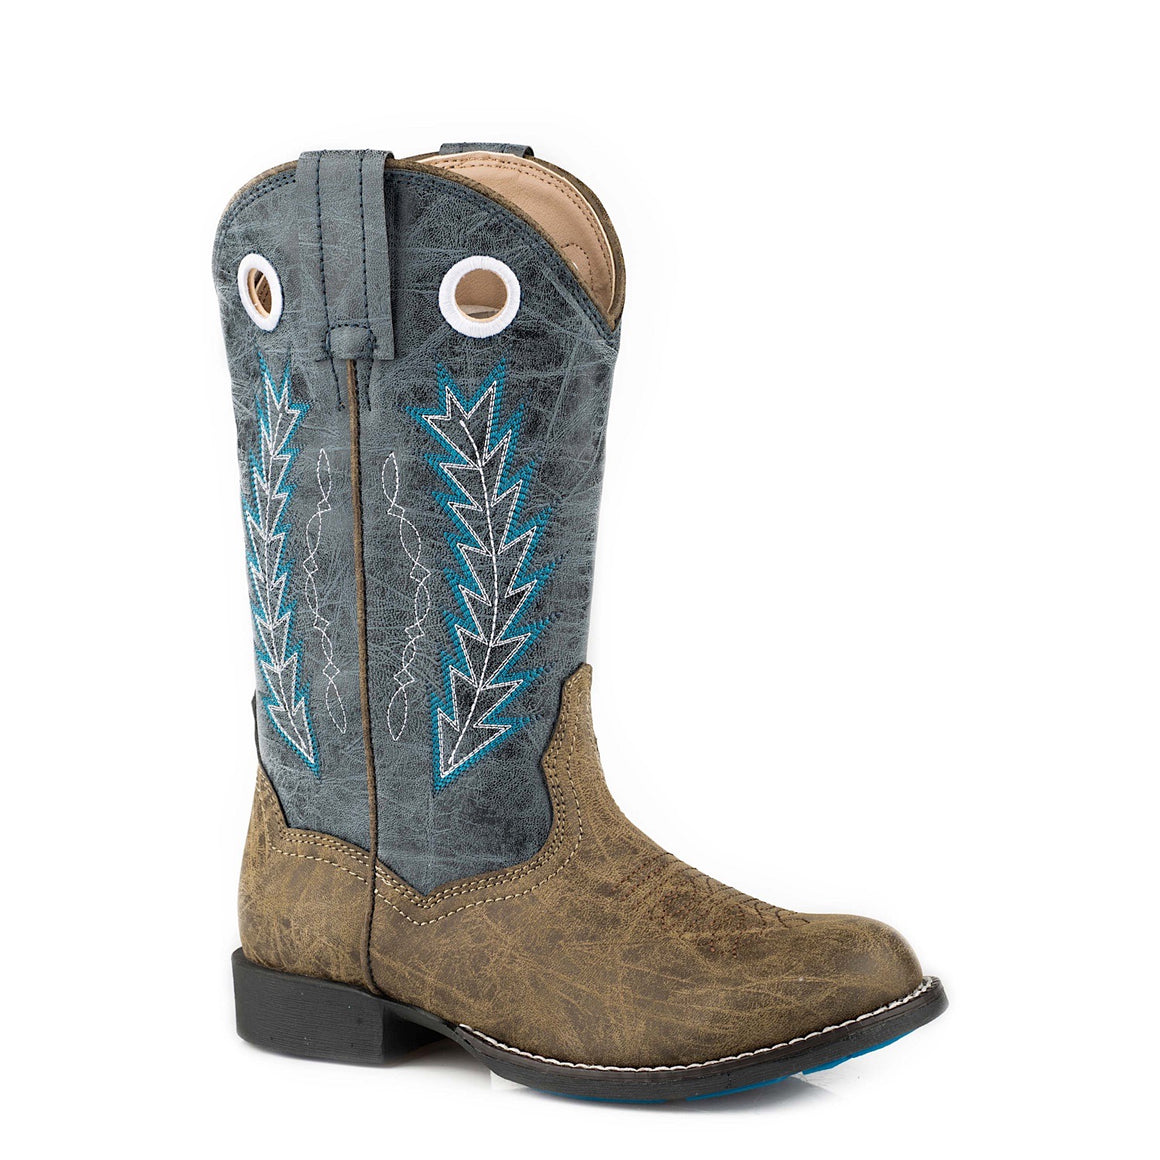 Roper Little Kids Hole in the Wall Western Boots Brown/Blue